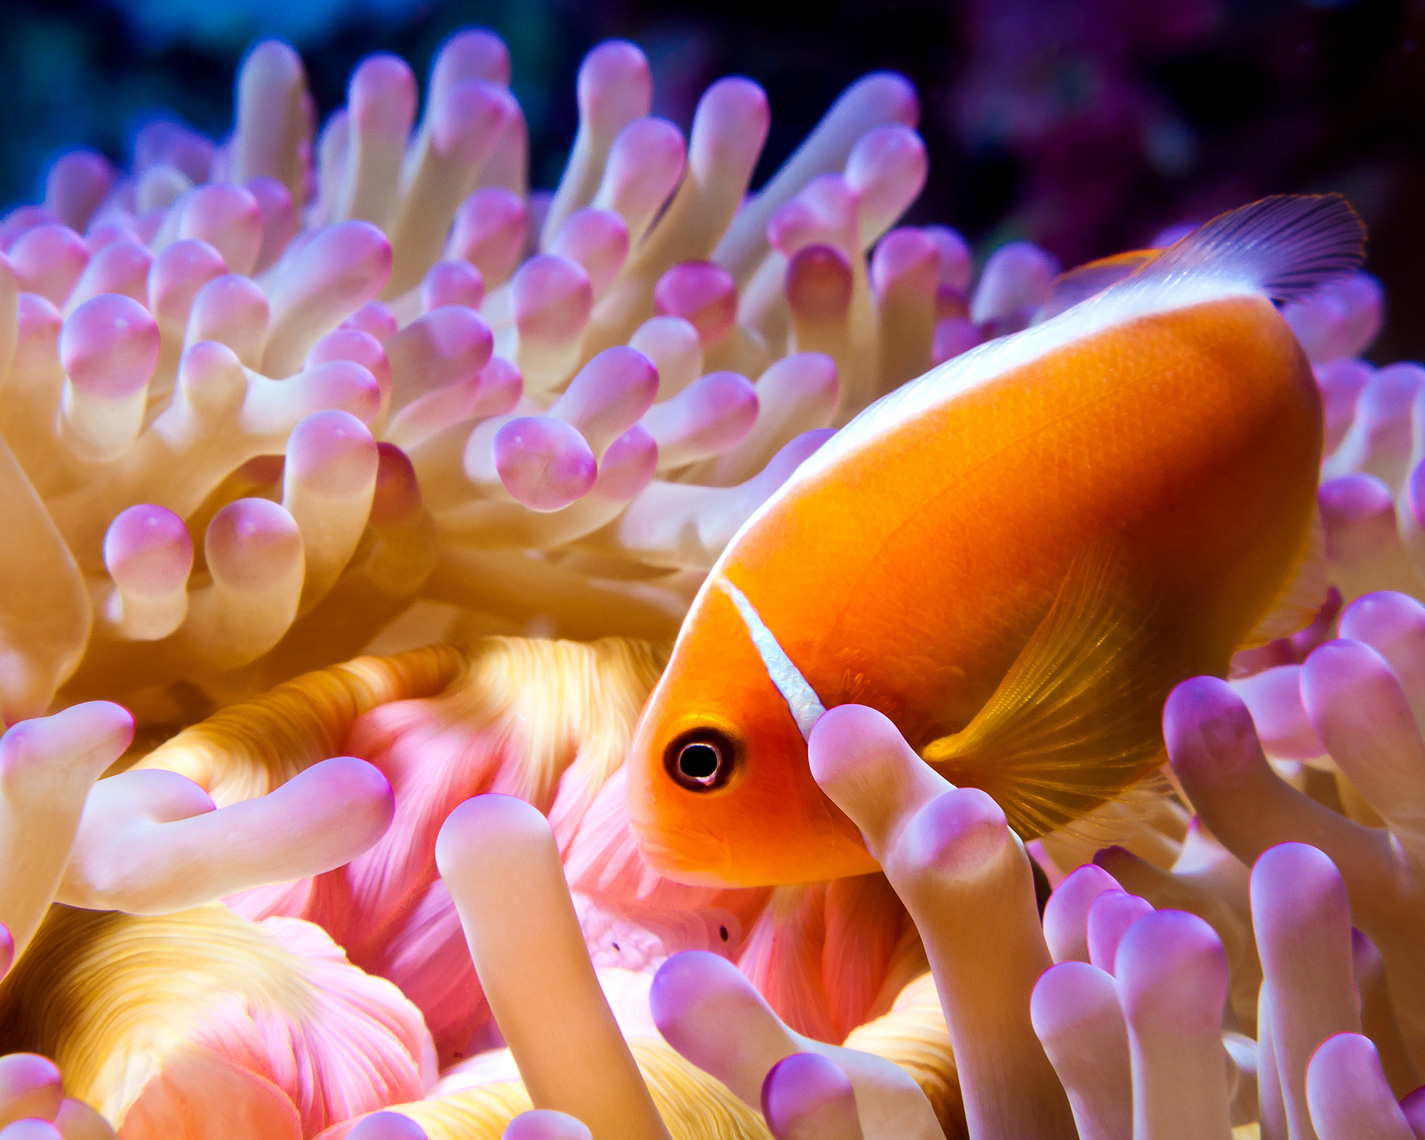 Pink anemonefish and anemone